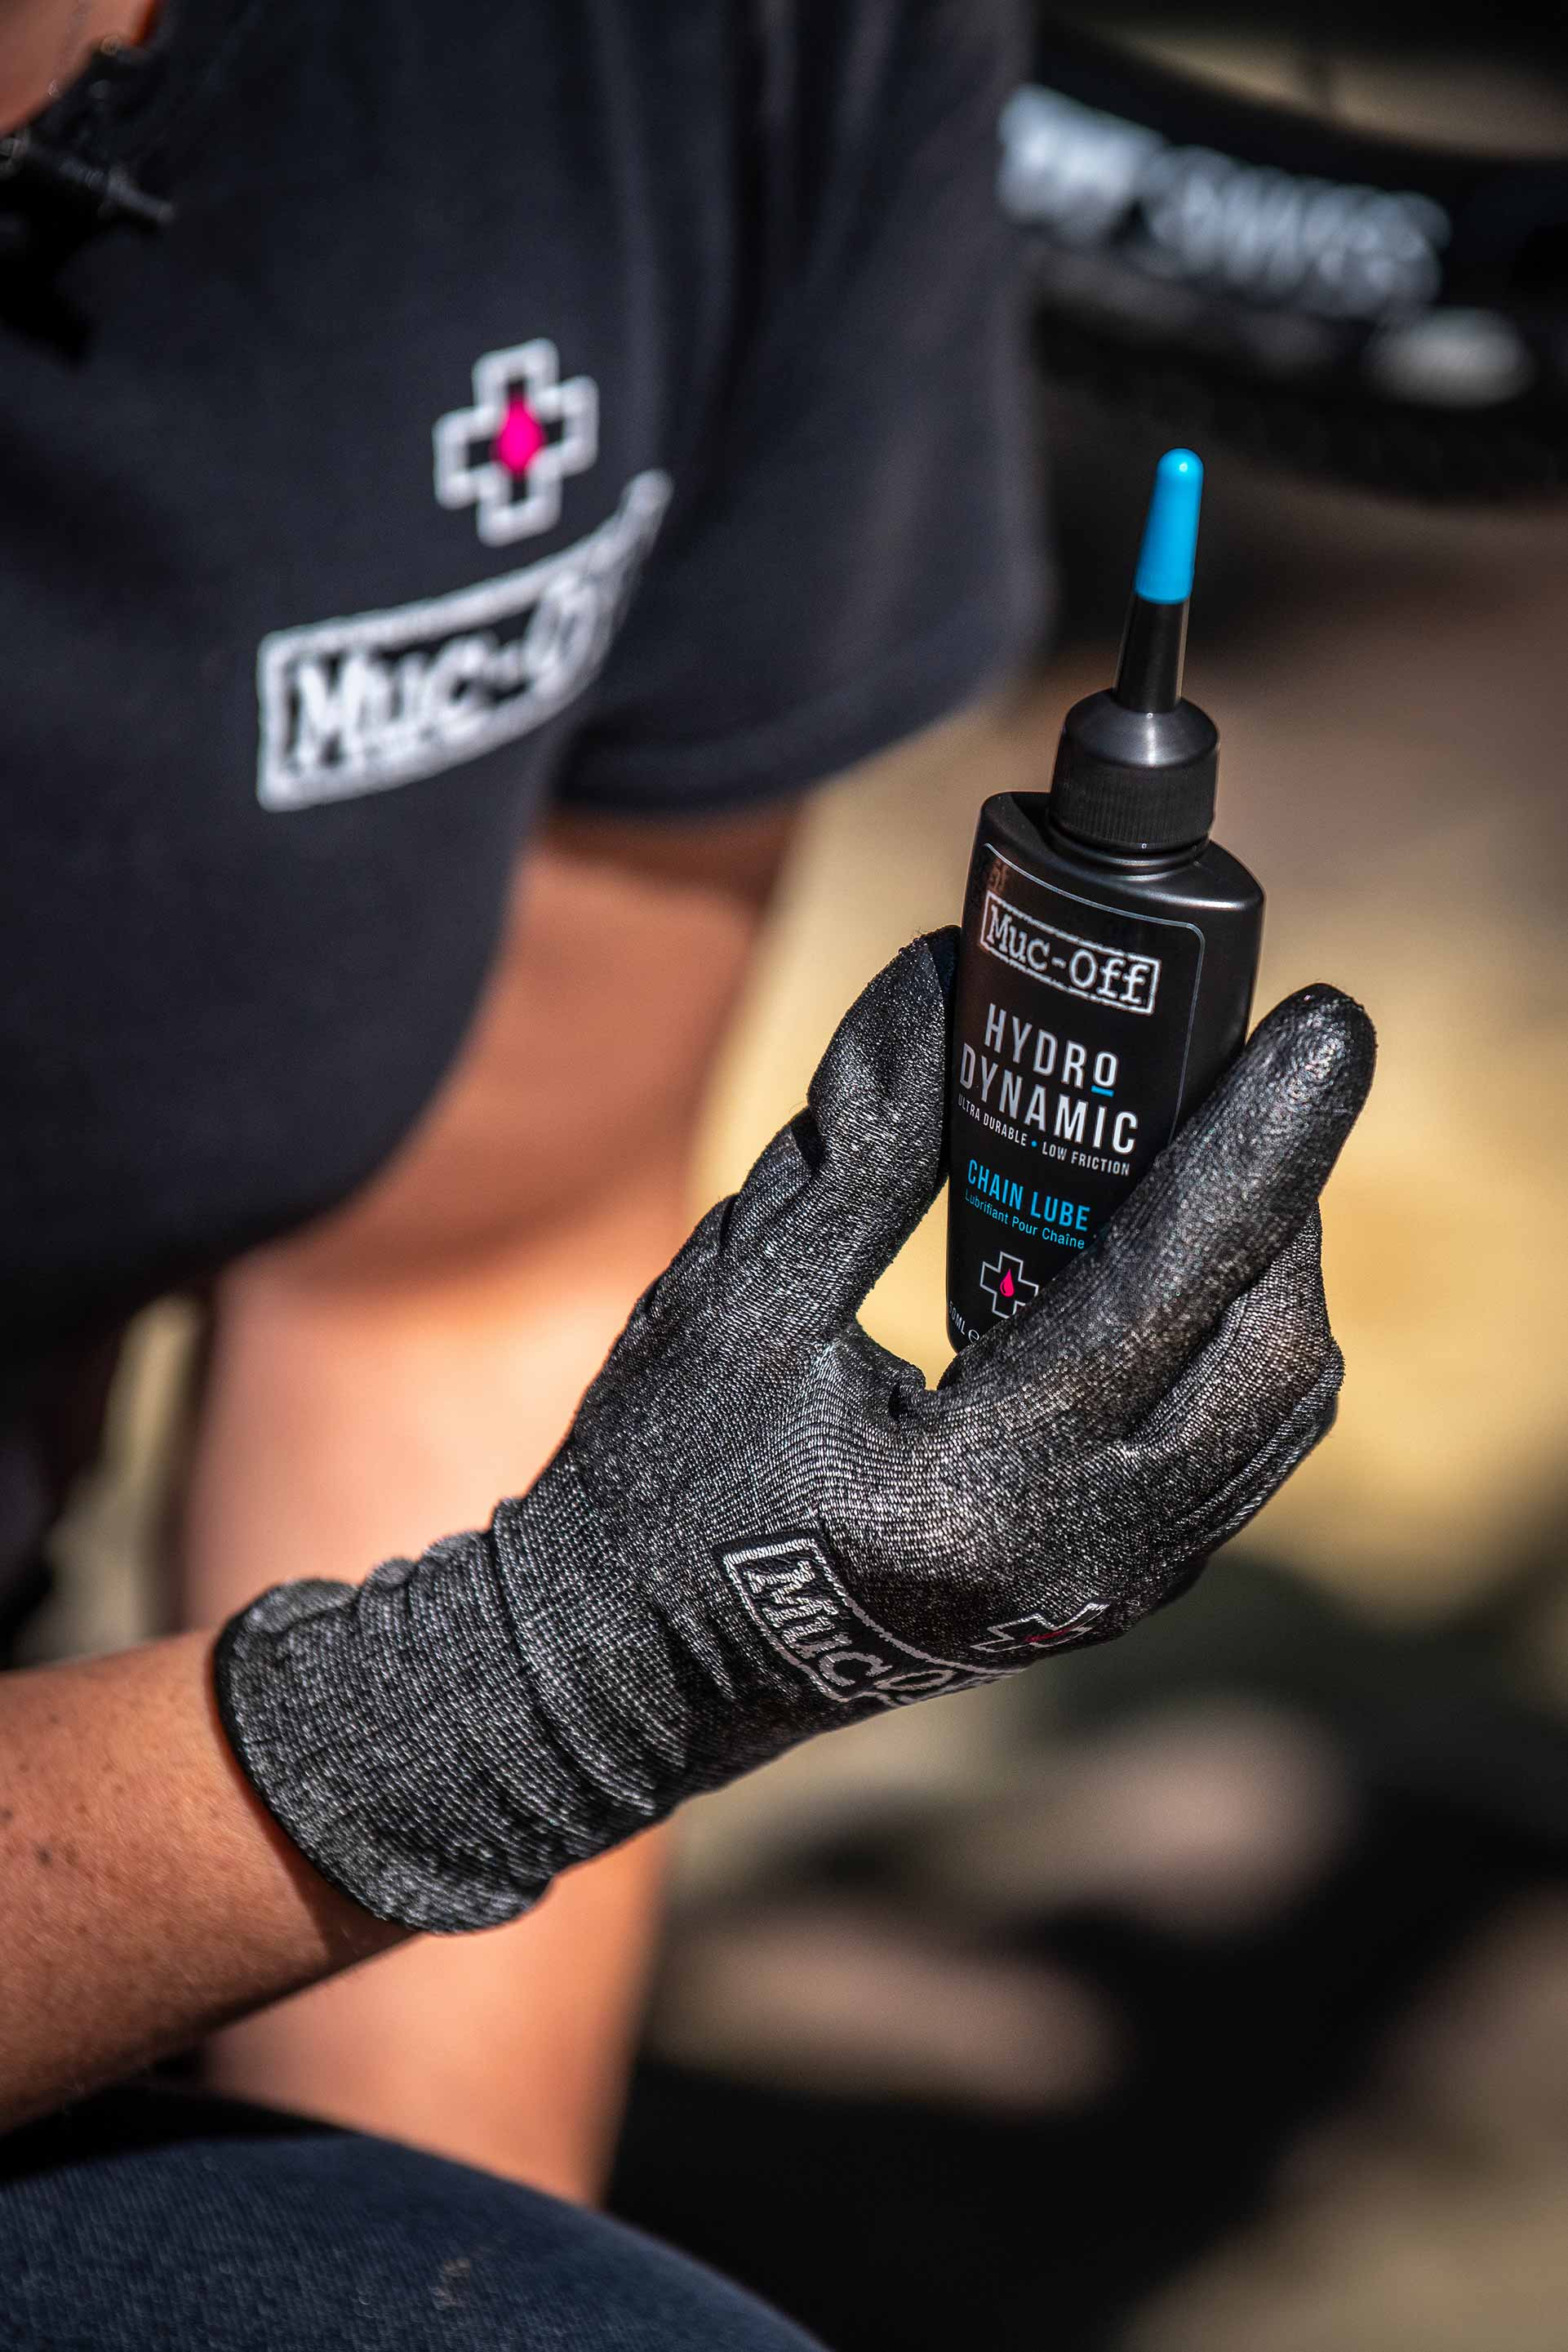 Hydrodynamic Chain Lube 50ml-Picture-01